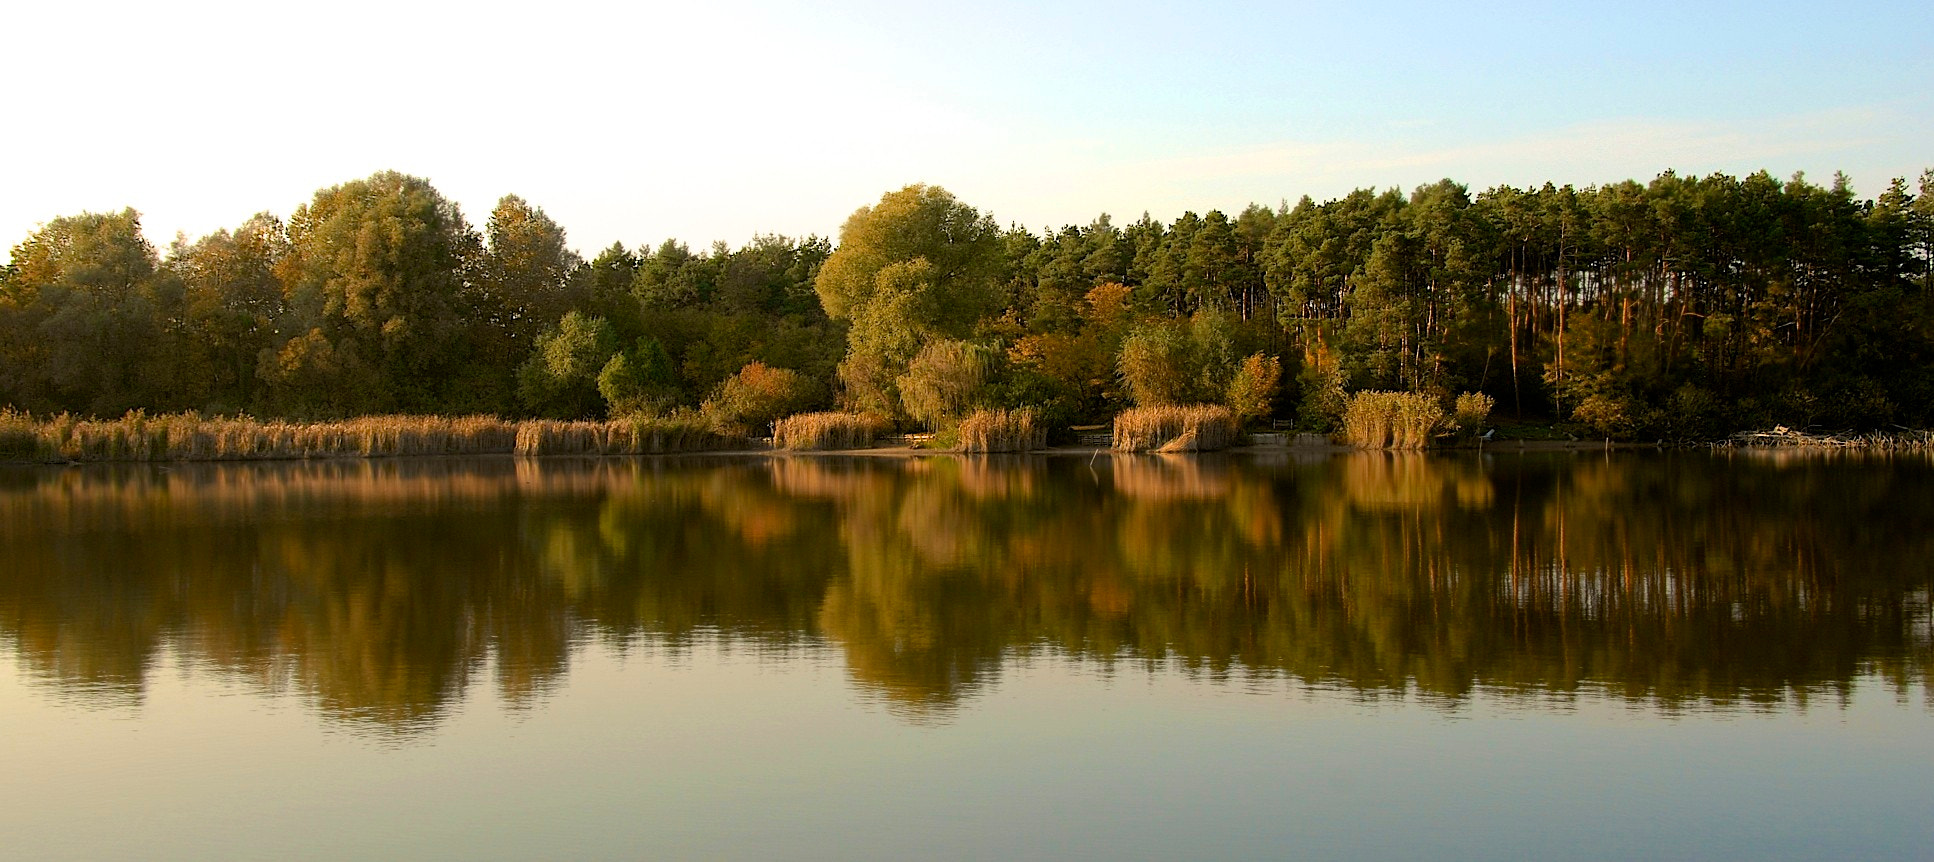 Photograph The Lake of Peace by Jozsef Steiner on 500px